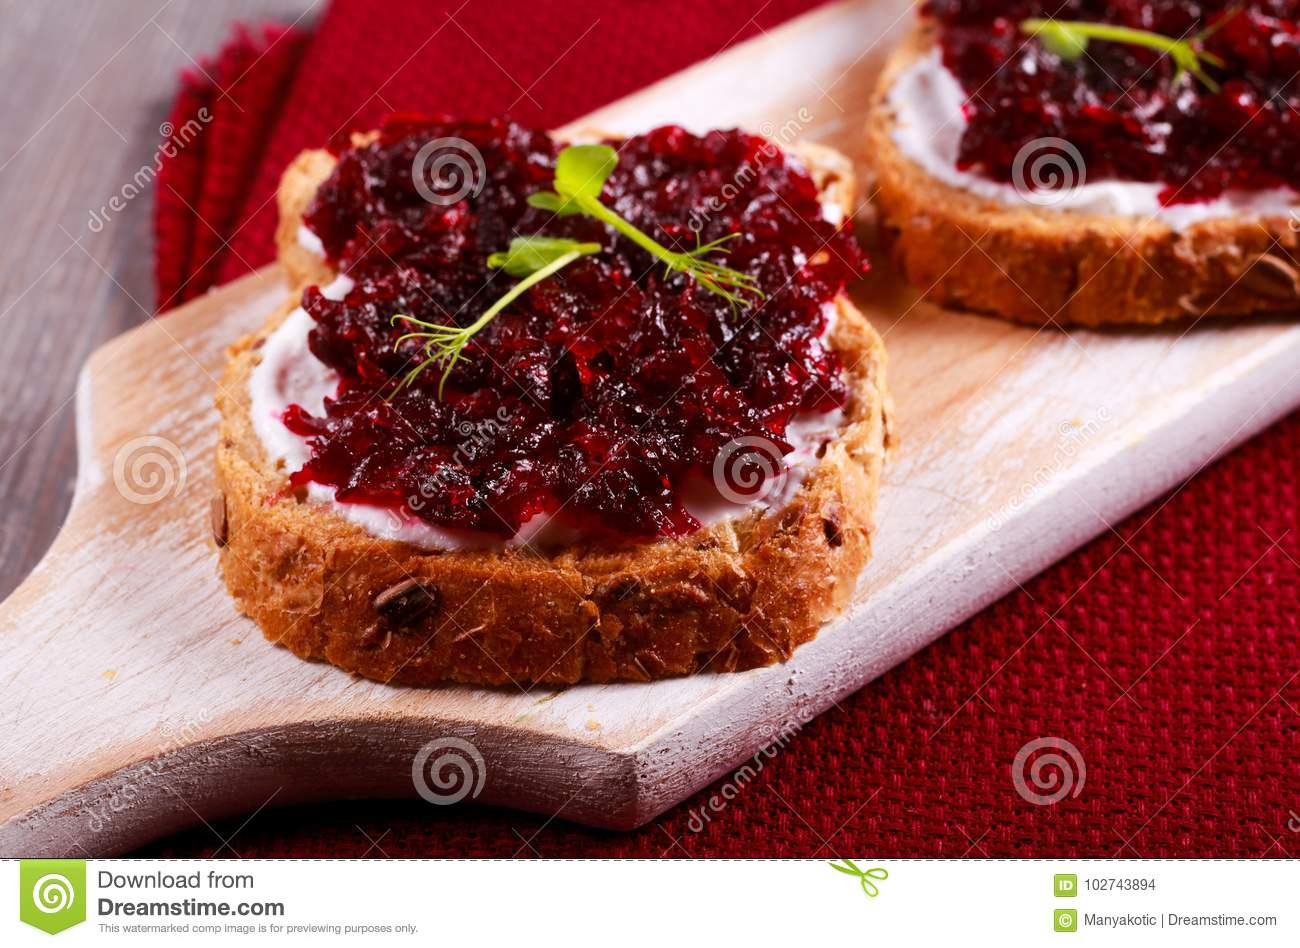 Beetroot relish over brown bread